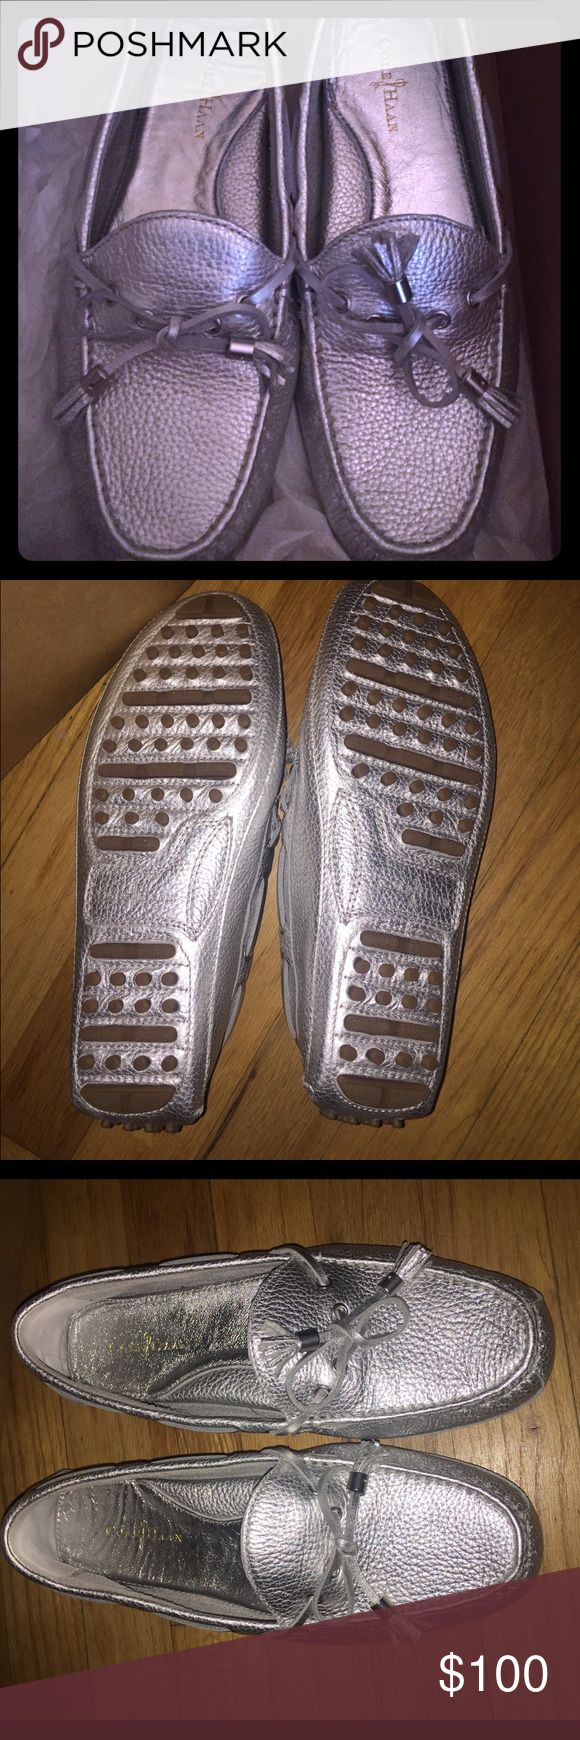 Brand New Cole Haan Grant Driver Ladies Shoe w/box Brand New, never worn Cole Haan Grant Driver Ladies Shoe w/original box!!! Size 8 (too big for me) and a great silver color!! Cole Haan Shoes Flats & Loafers